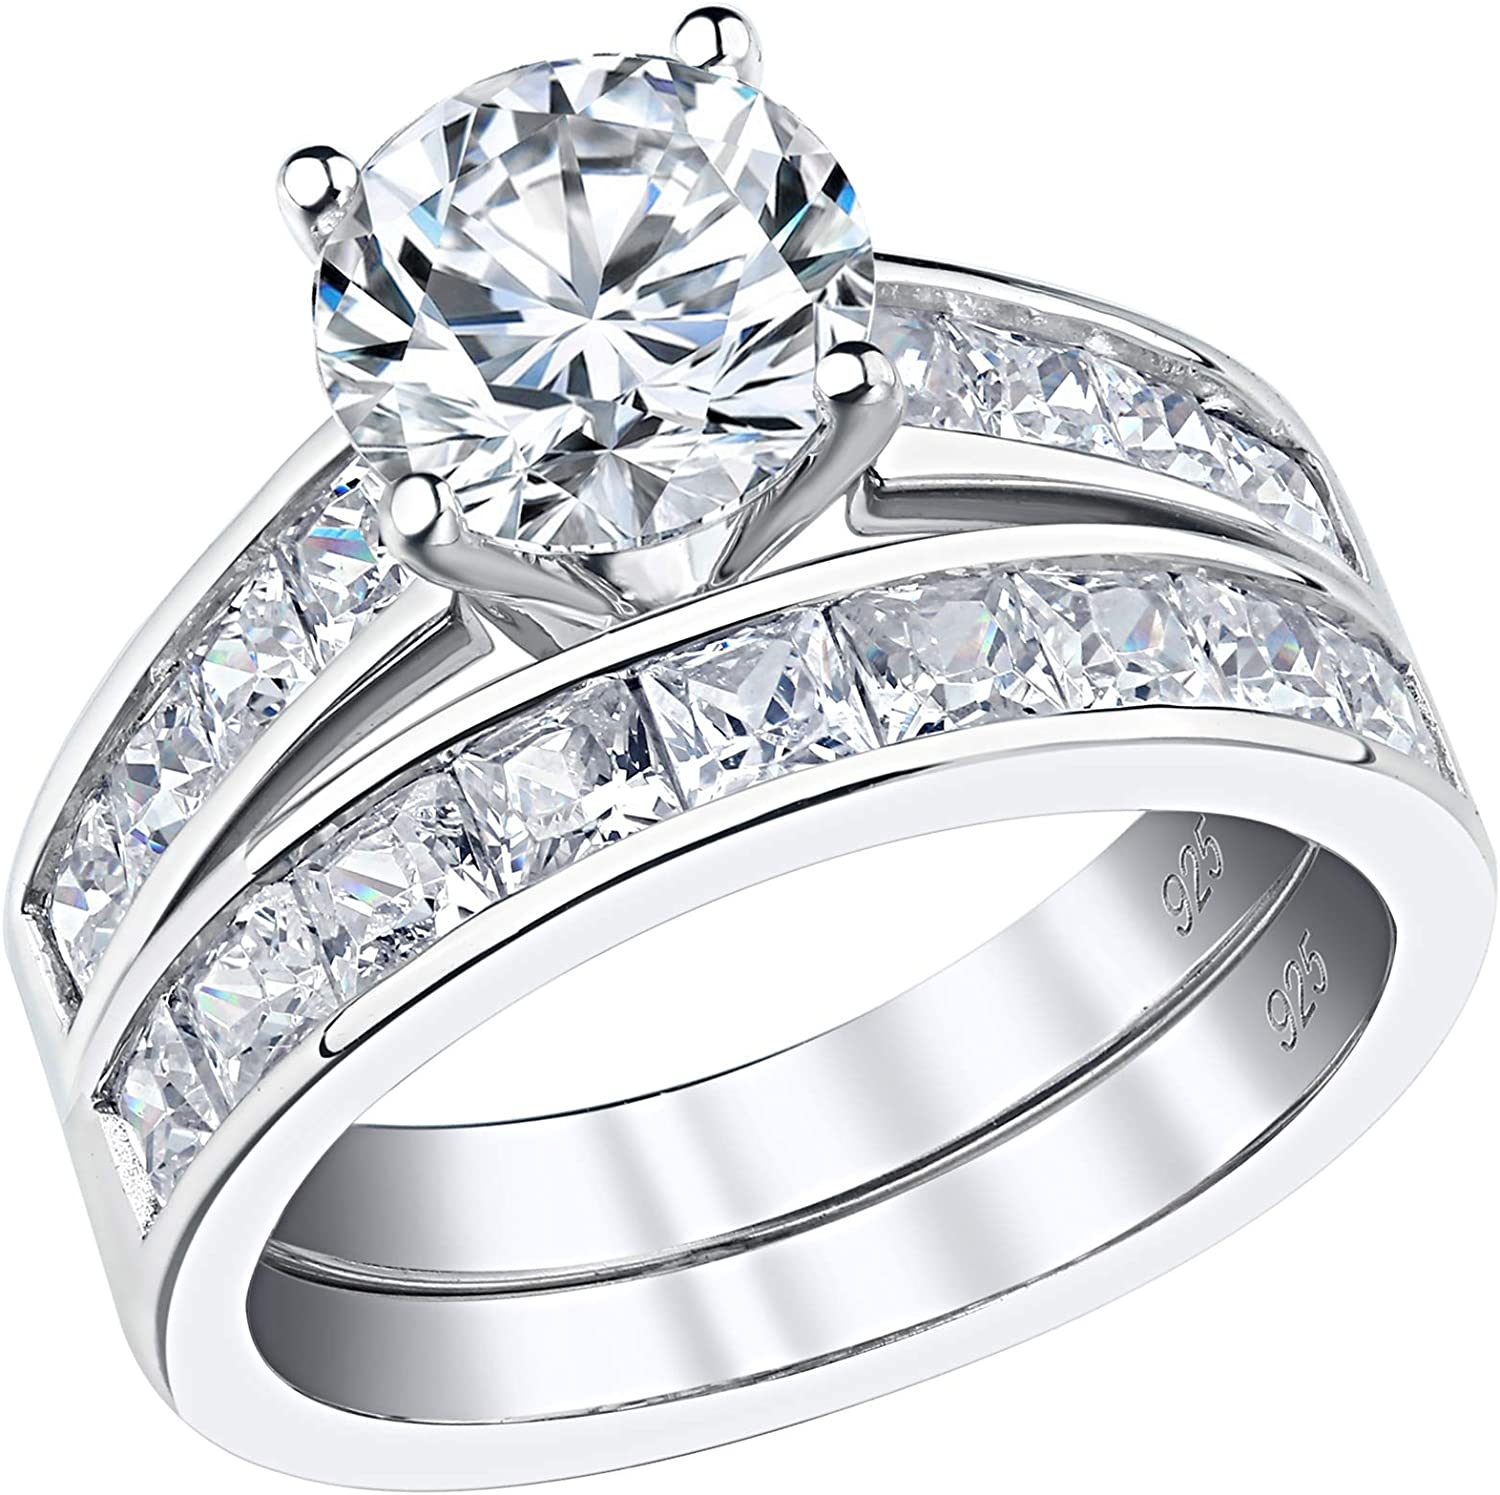 Amazon Com Sheloves 2 7ct Round Princess Cut Cz Engagement Wedding Rings Womens Sterling Silver Bridal Set 5 10 Jewelry